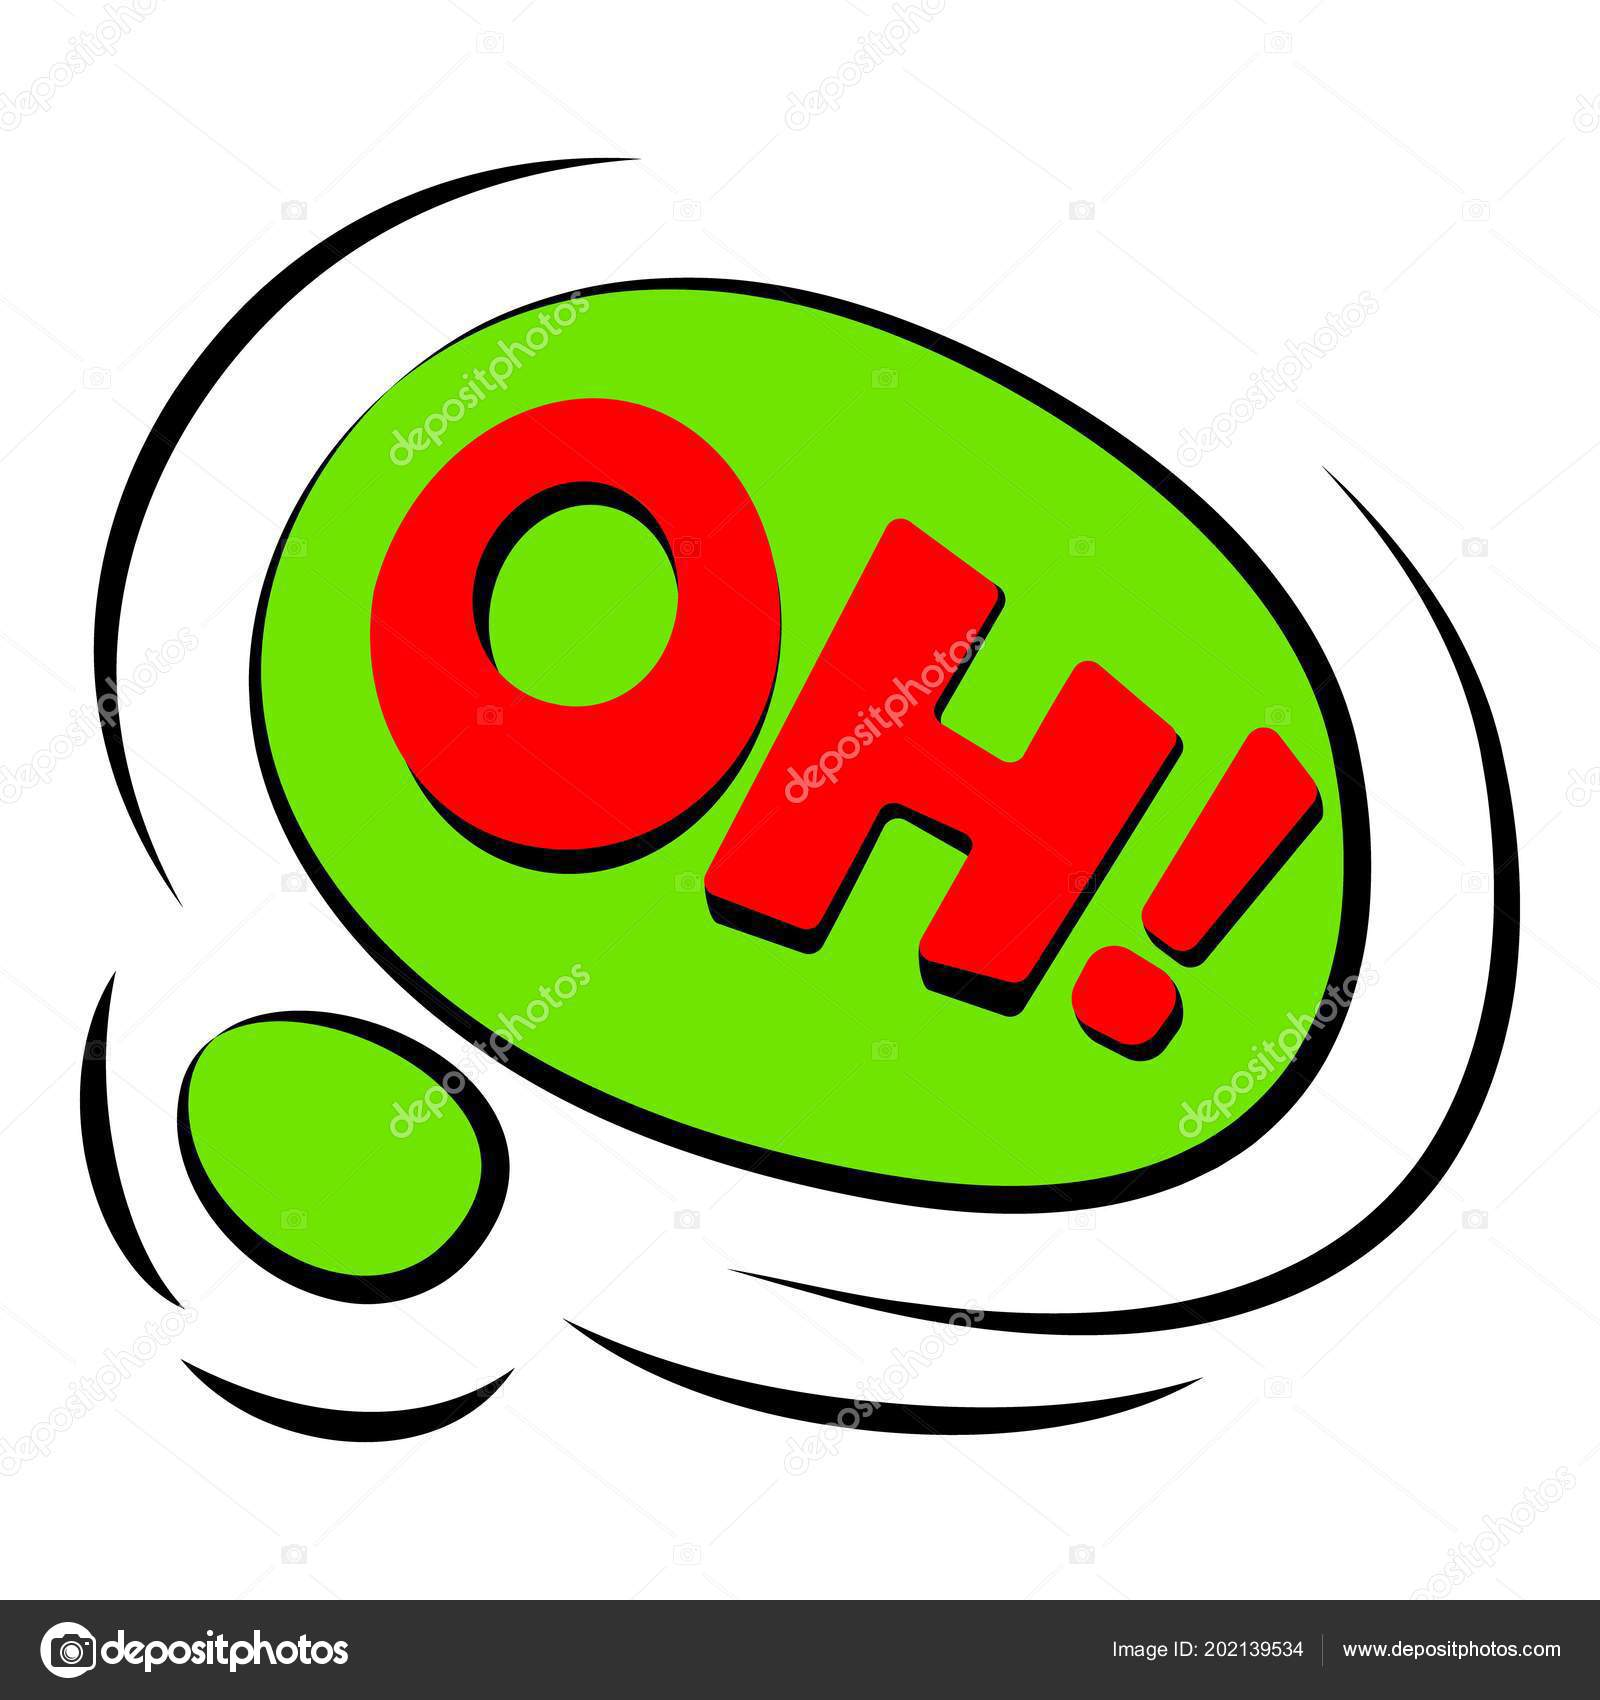 Oh sound effect icon, cartoon style — Stock Vector